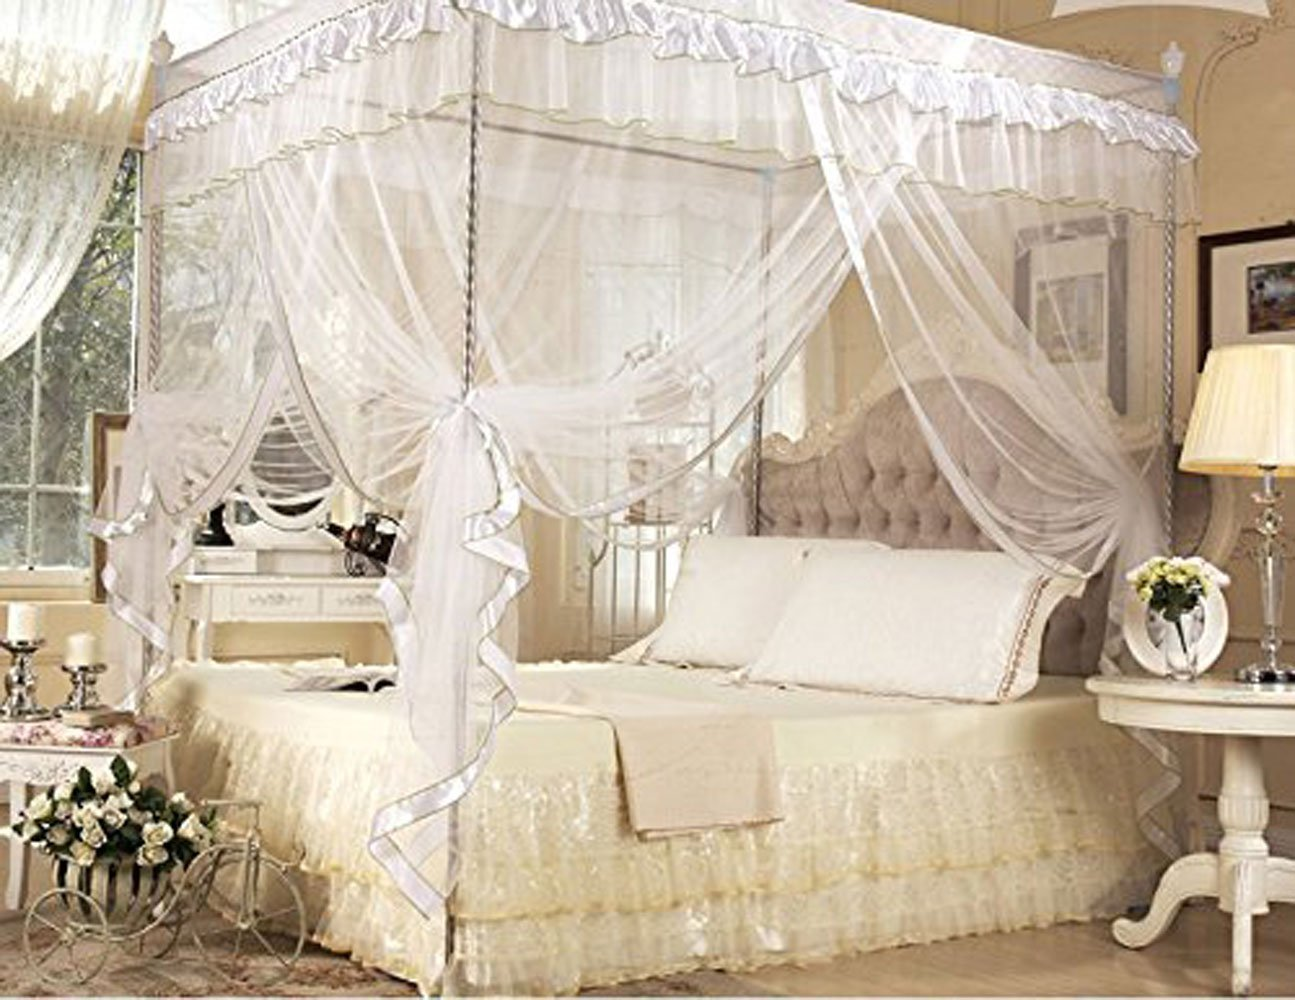 CdyBox 4 Corners Bed Canopy Twin Full Queen King Mosquito Net (Full/Queen, White)